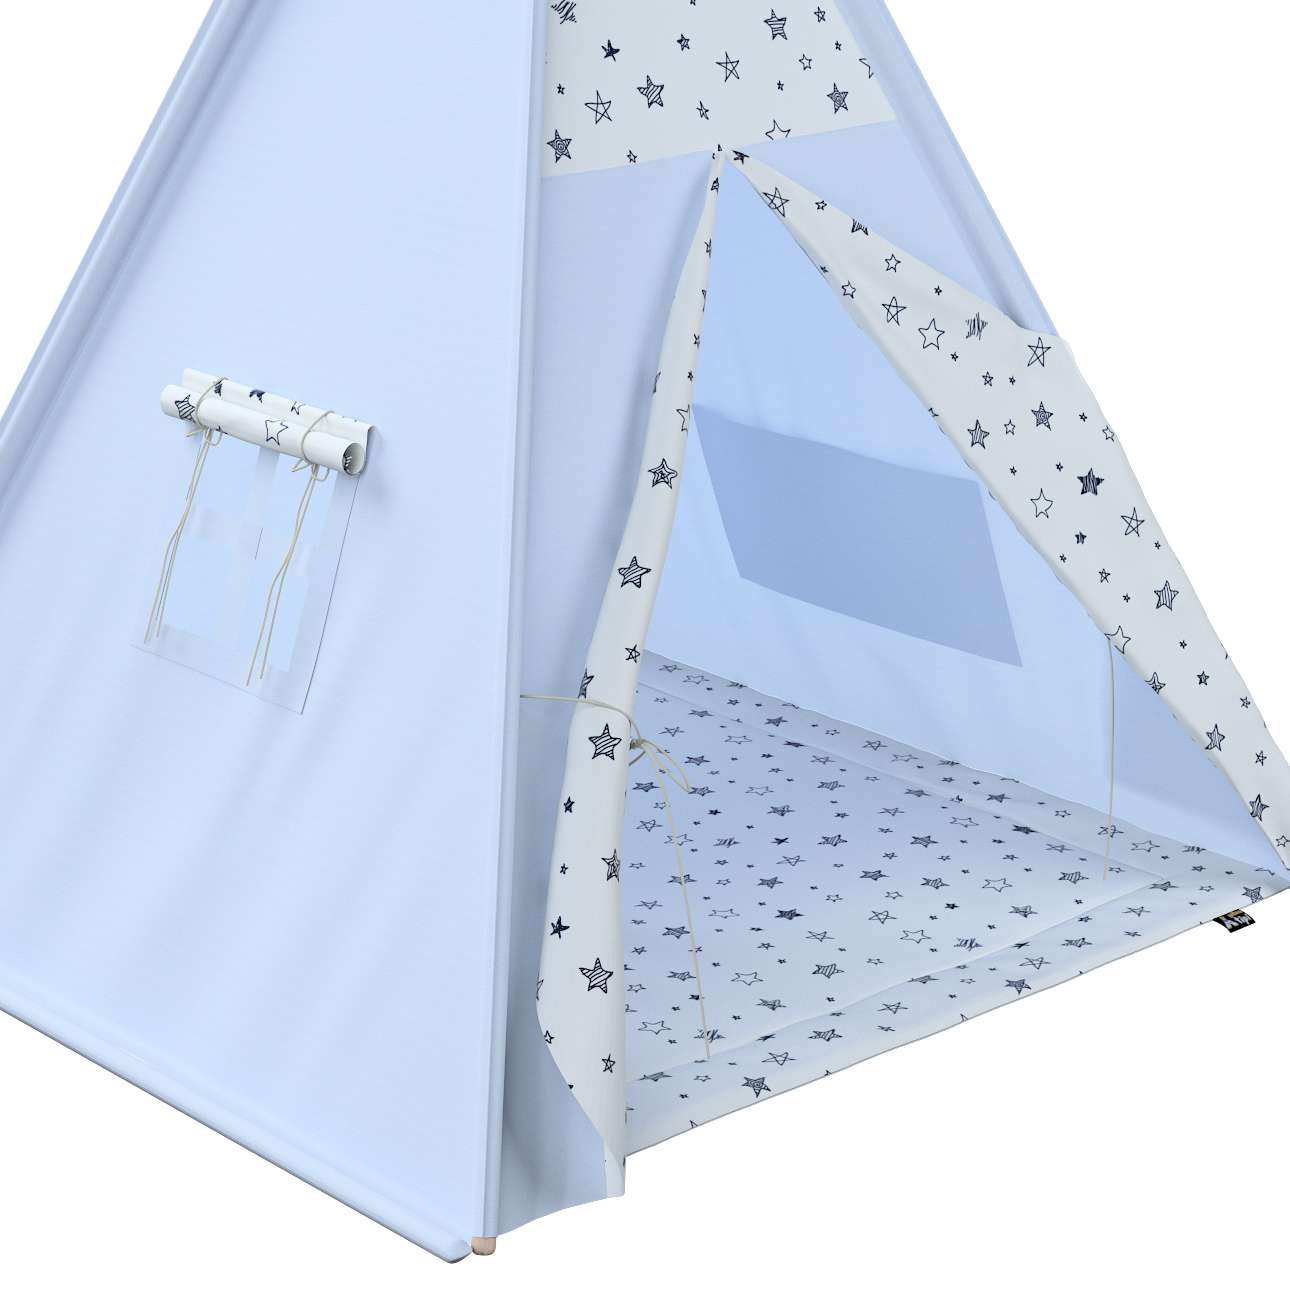 Tepee mat in collection Magic Collection, fabric: 500-08